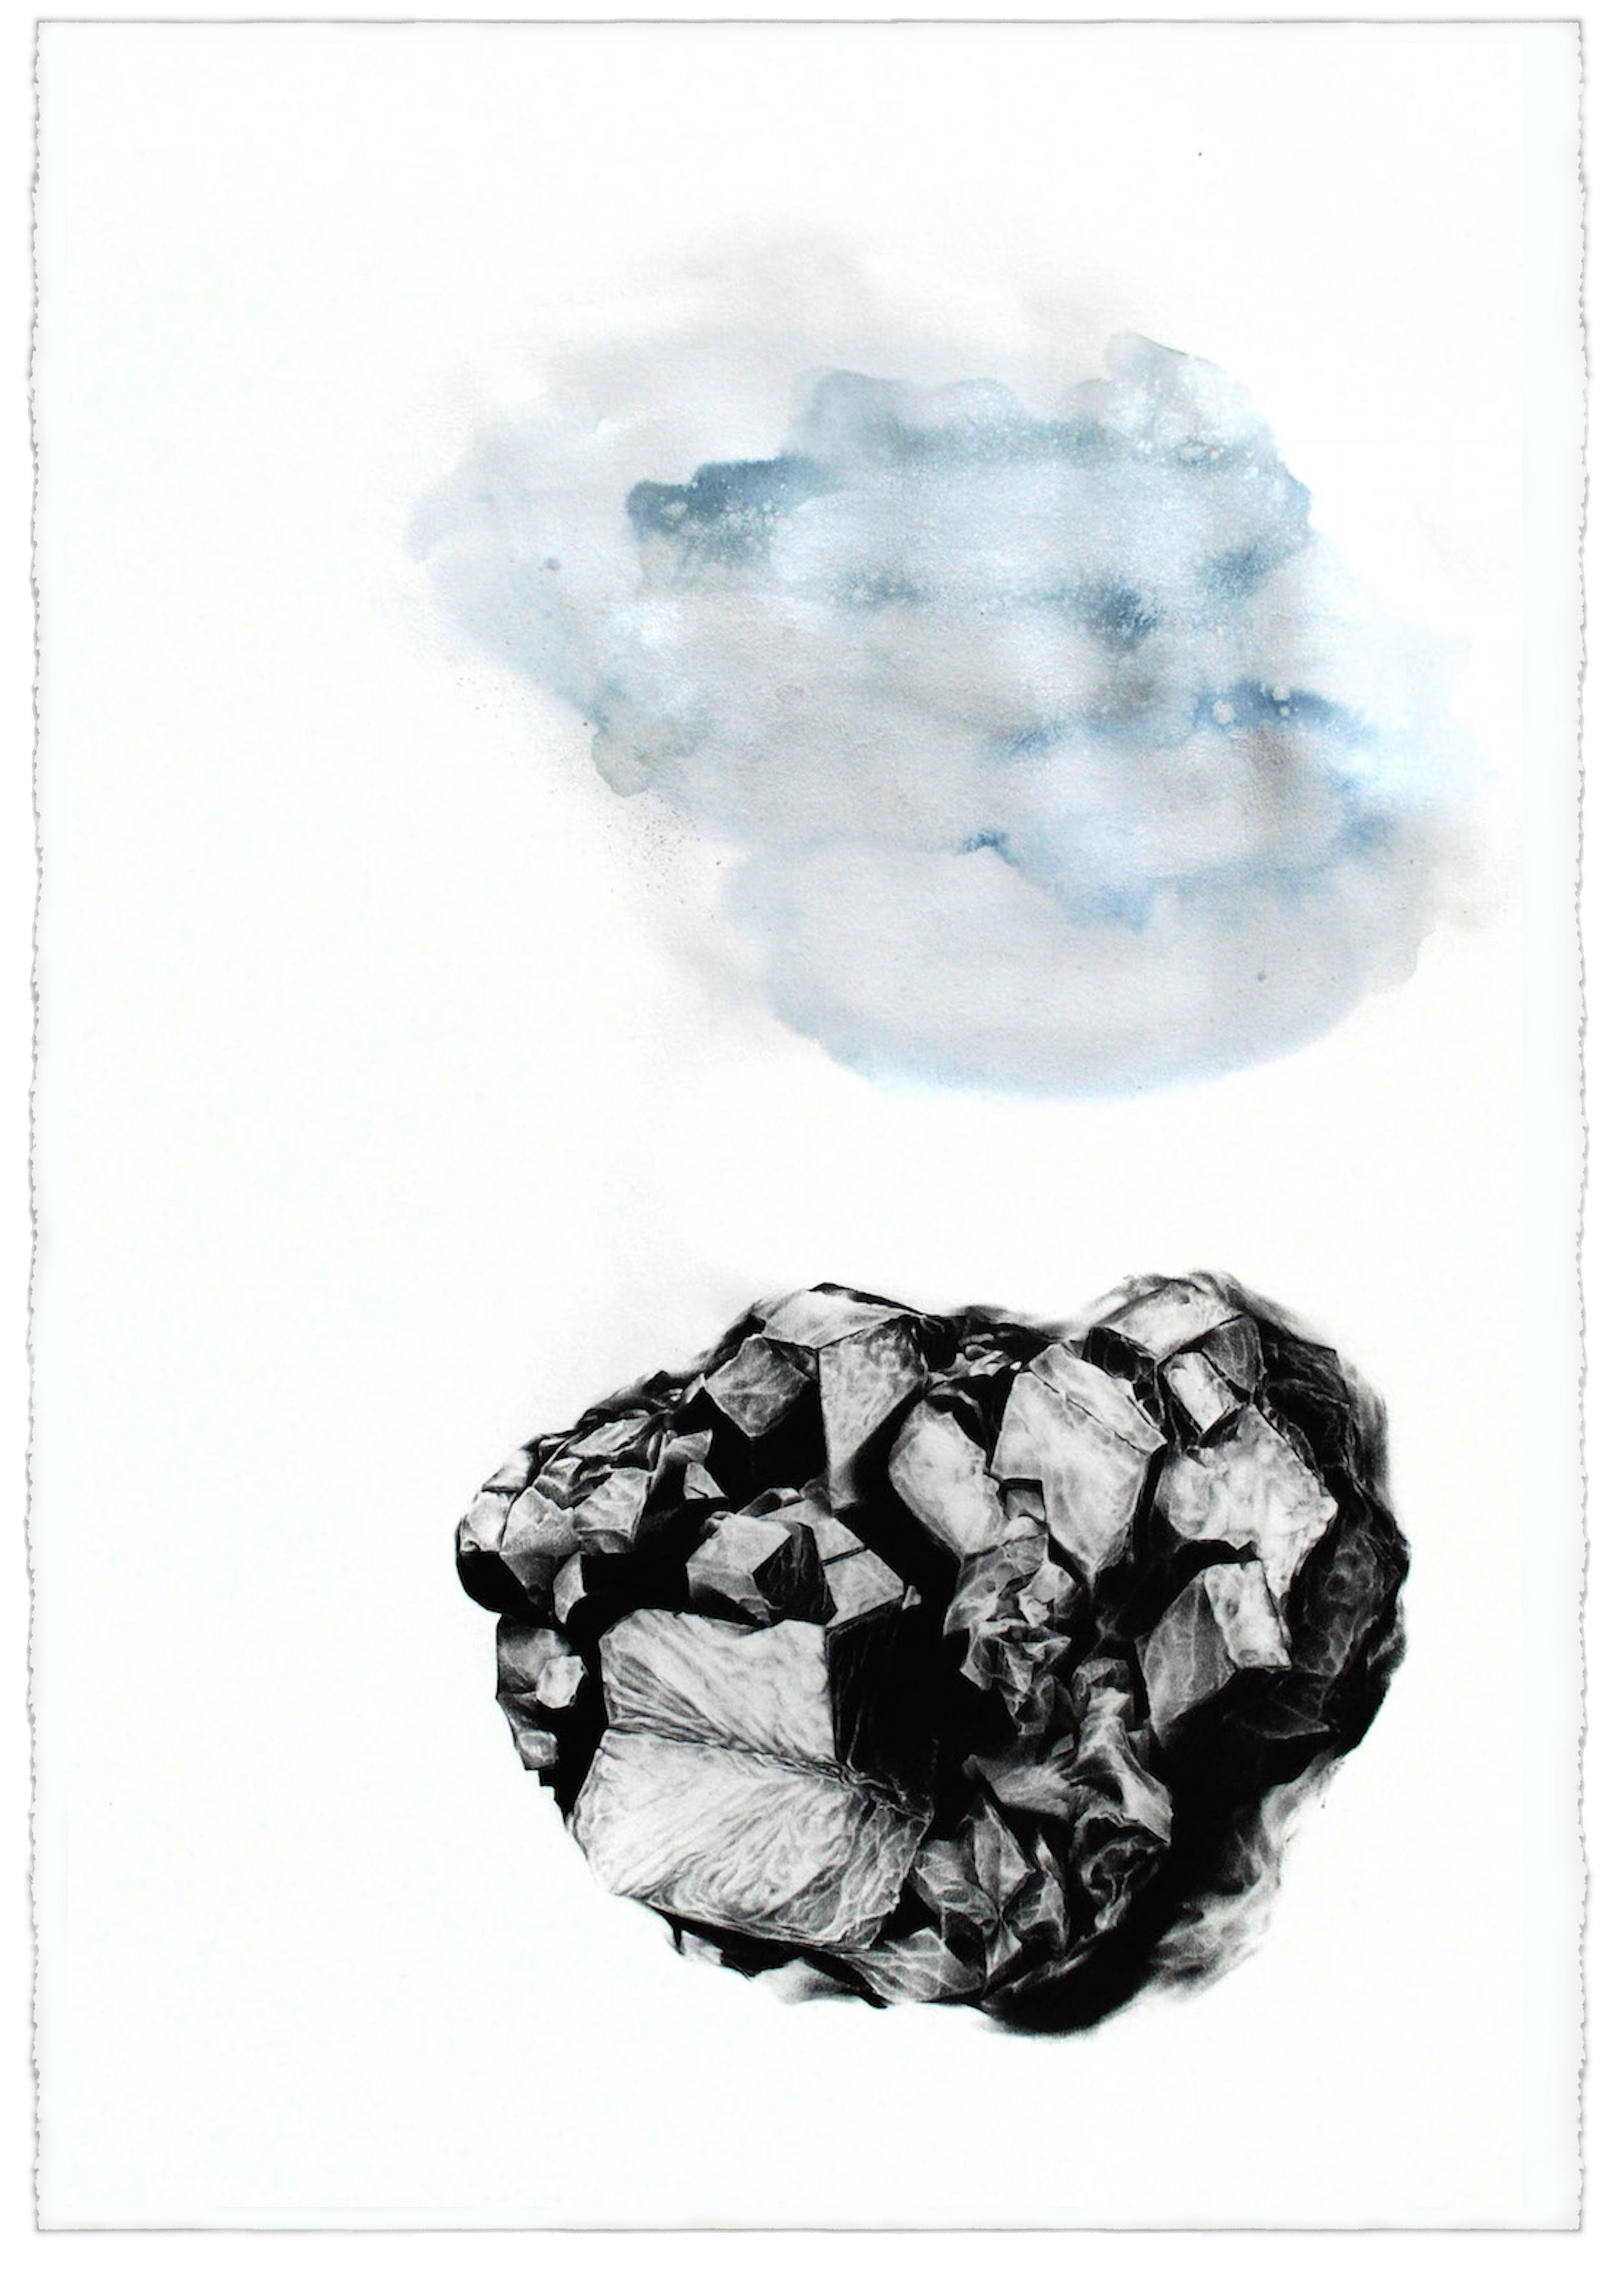 """"""" 37.6627° N, 118.7892° W (Hilltop),"""" Graphite and Watercolor on Paper, 44"""" x 30"""" 2016"""